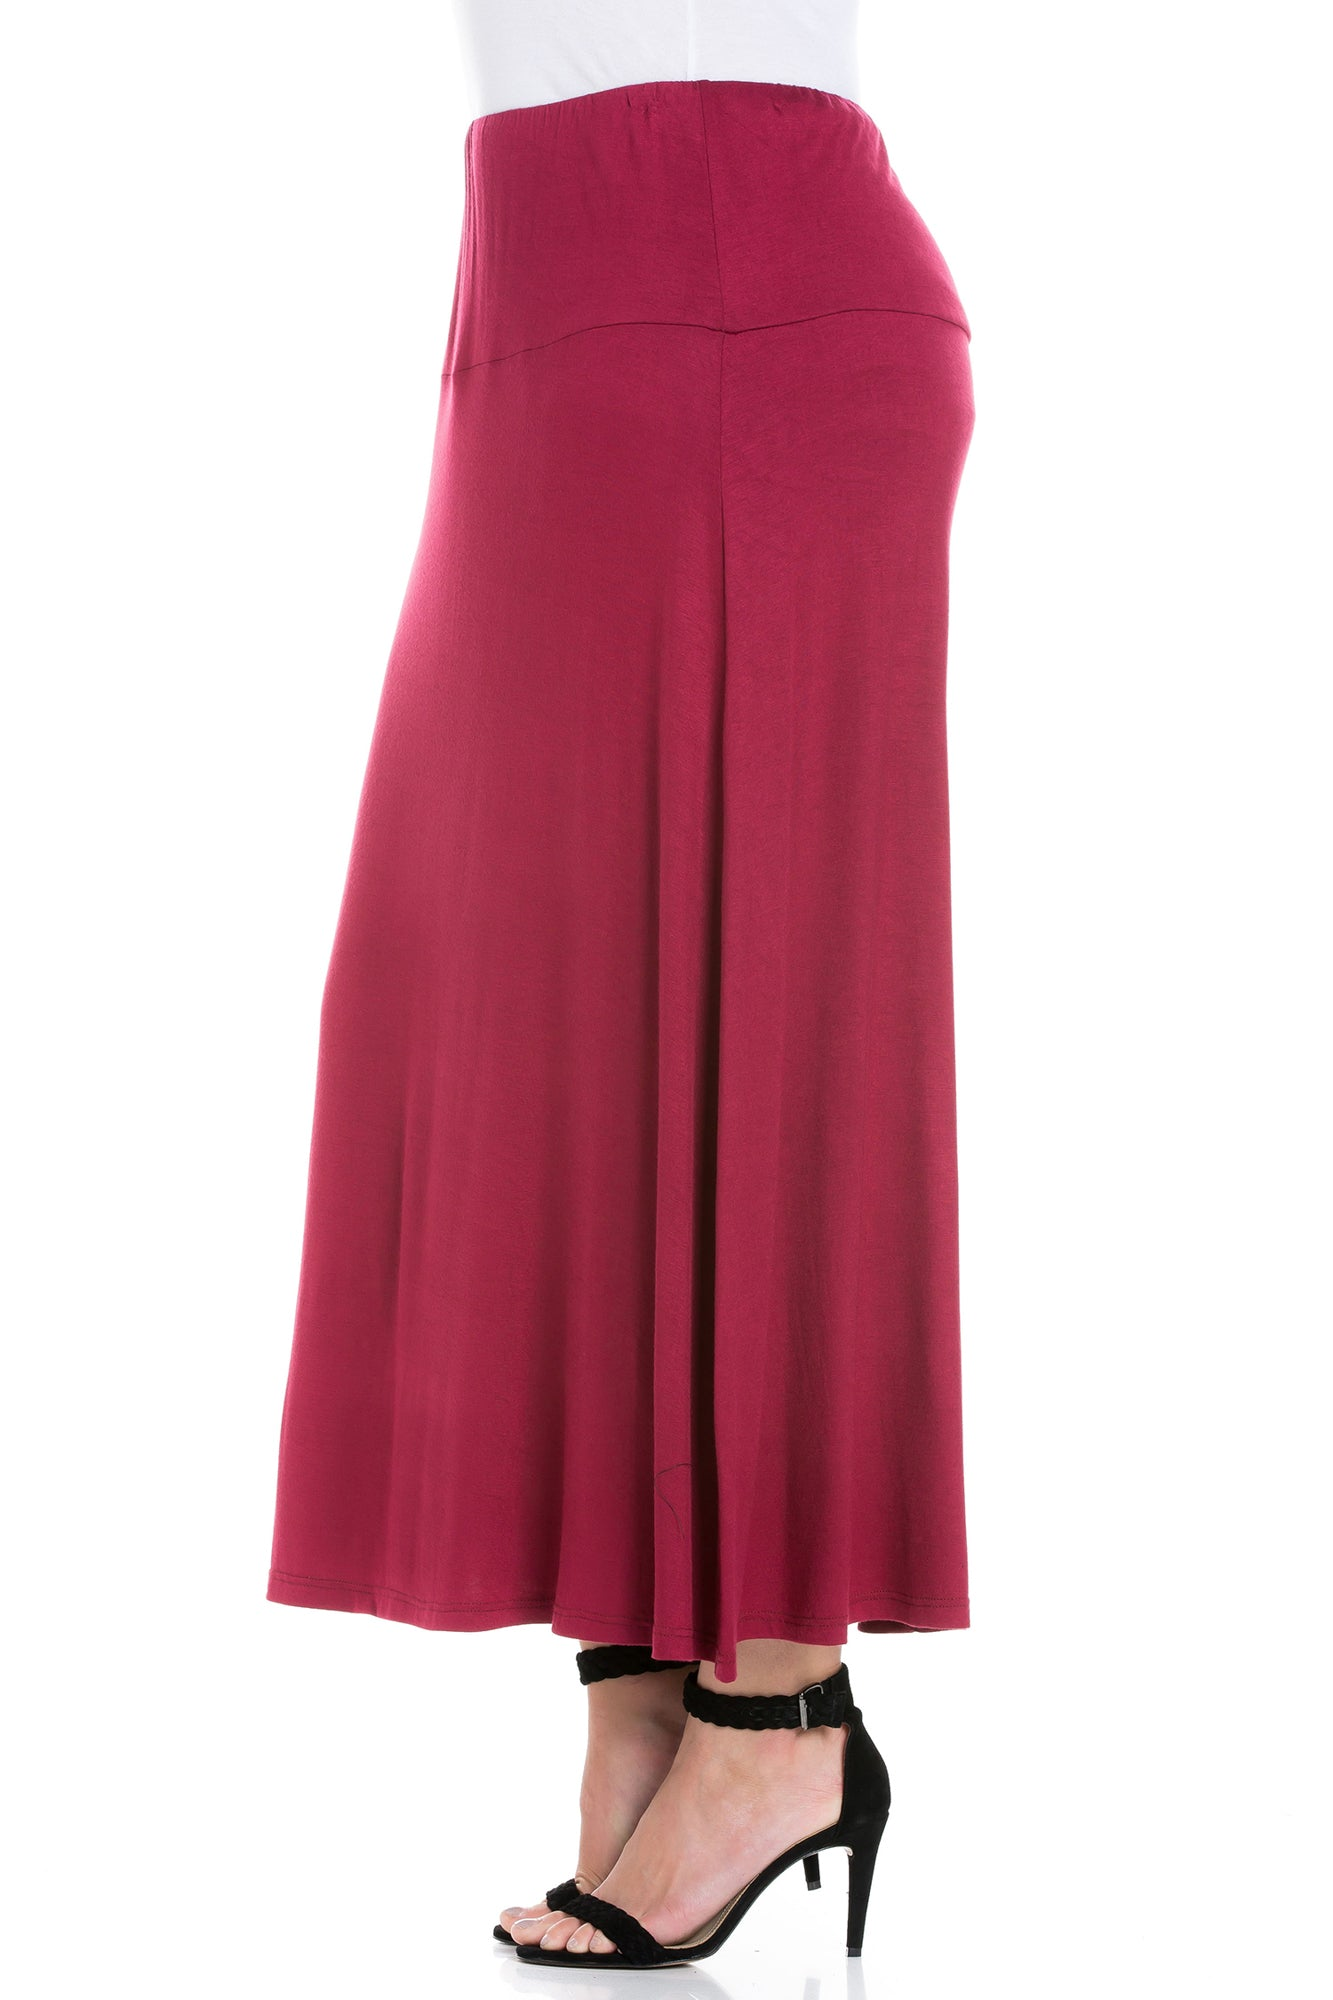 24seven Comfort Apparel Womens Comfortable Fit Elastic Waist Maxi Skirt-PANTS-24Seven Comfort Apparel-WINE-S-24/7 Comfort Apparel